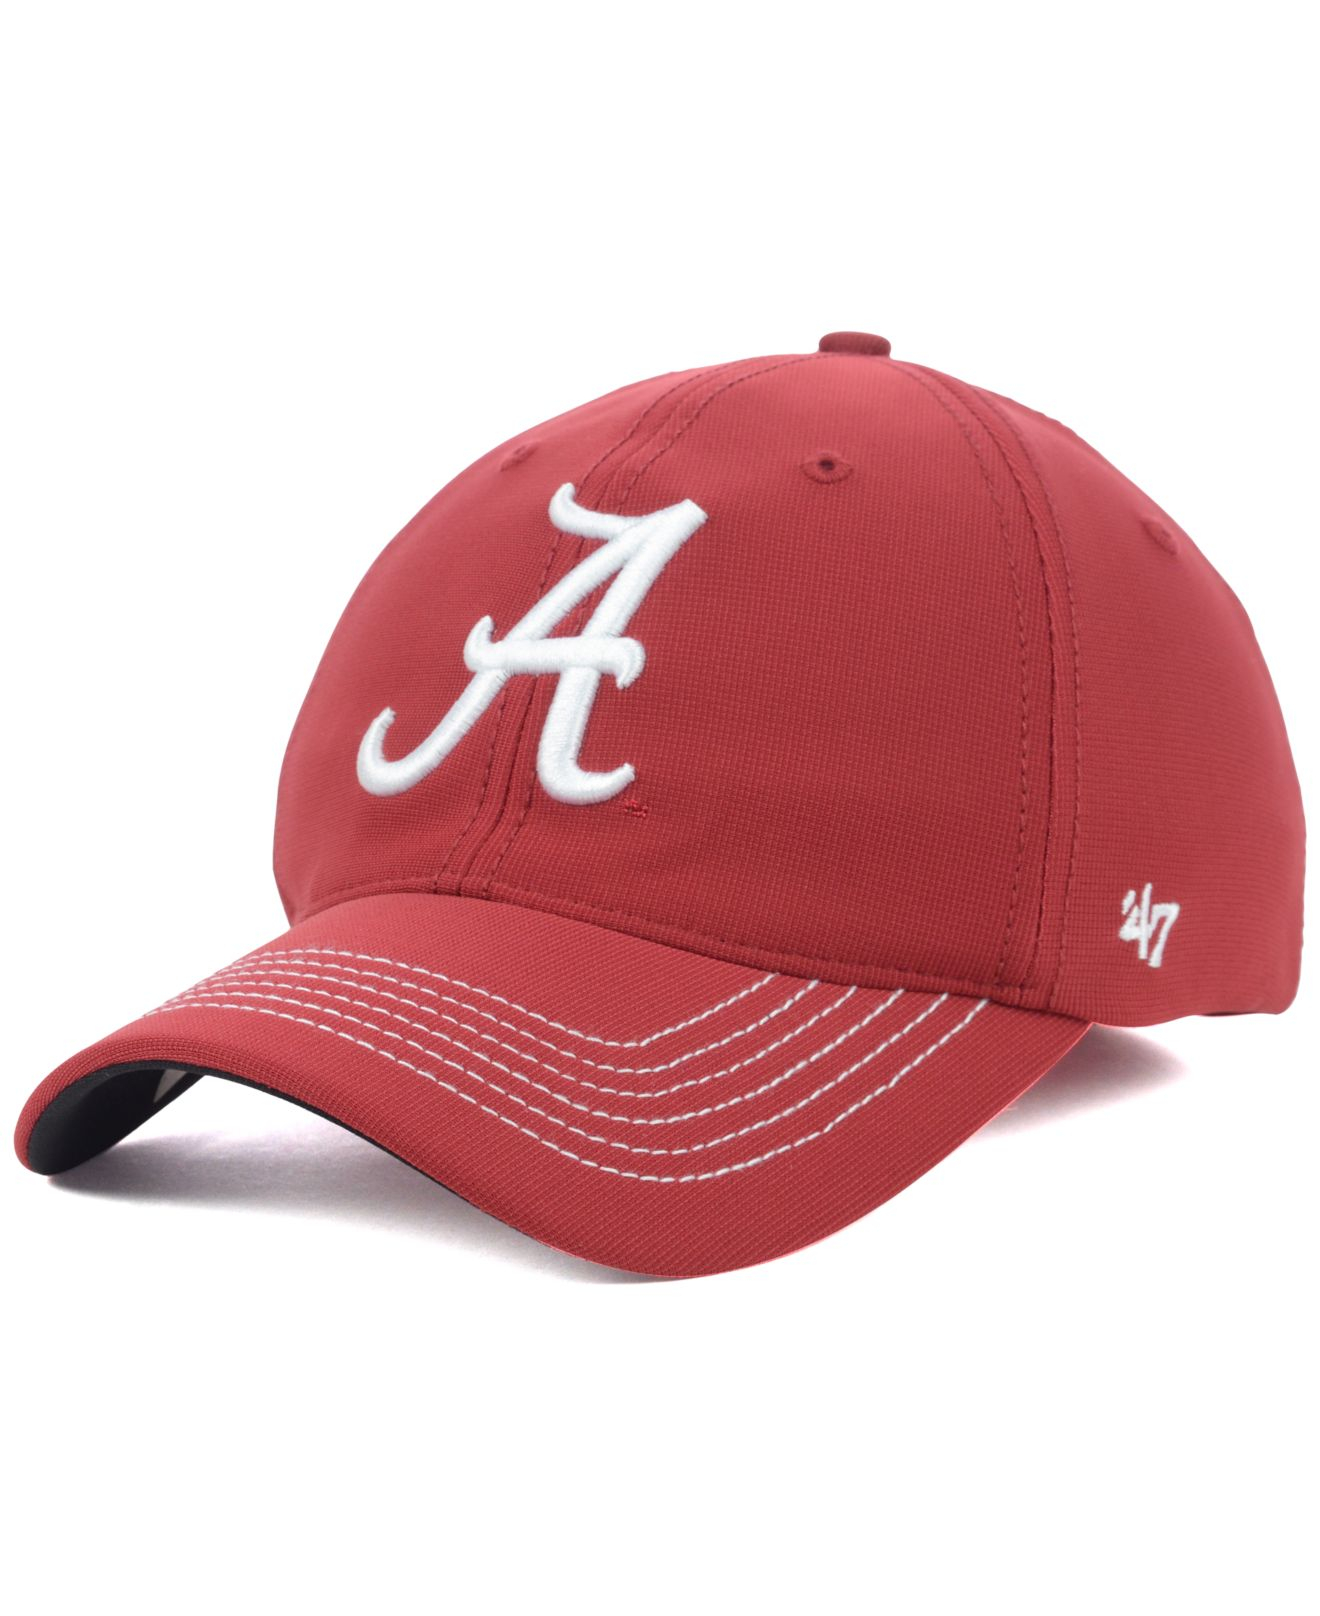 d6102556b48 ... clean up cap 8f504 47e2d  switzerland lyst 47 brand alabama crimson tide  game time closer cap in red for men 79c76